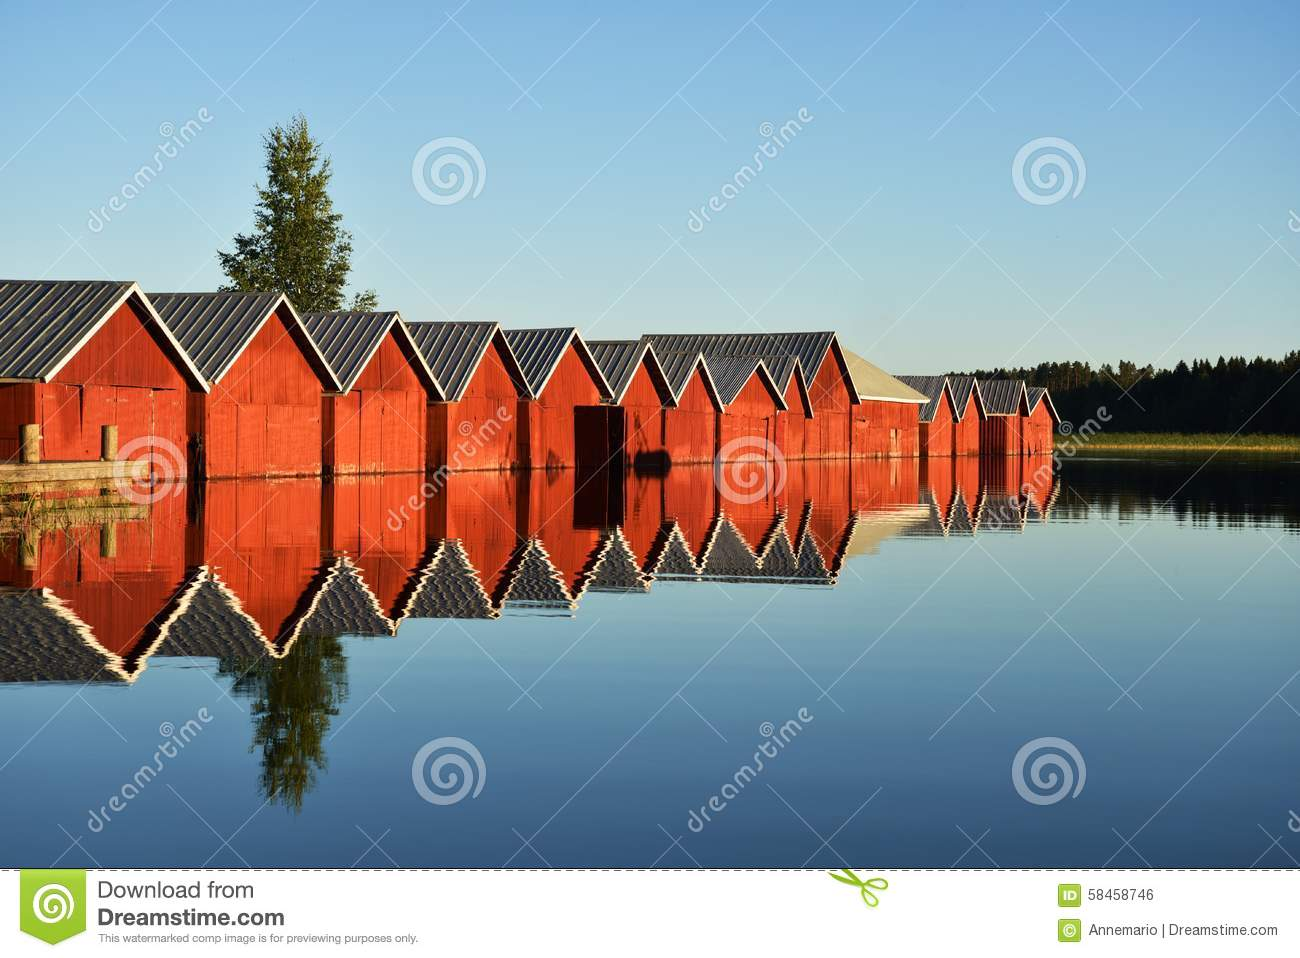 Download Summer in Finland stock photo. Image of finnish, cottages - 58458746